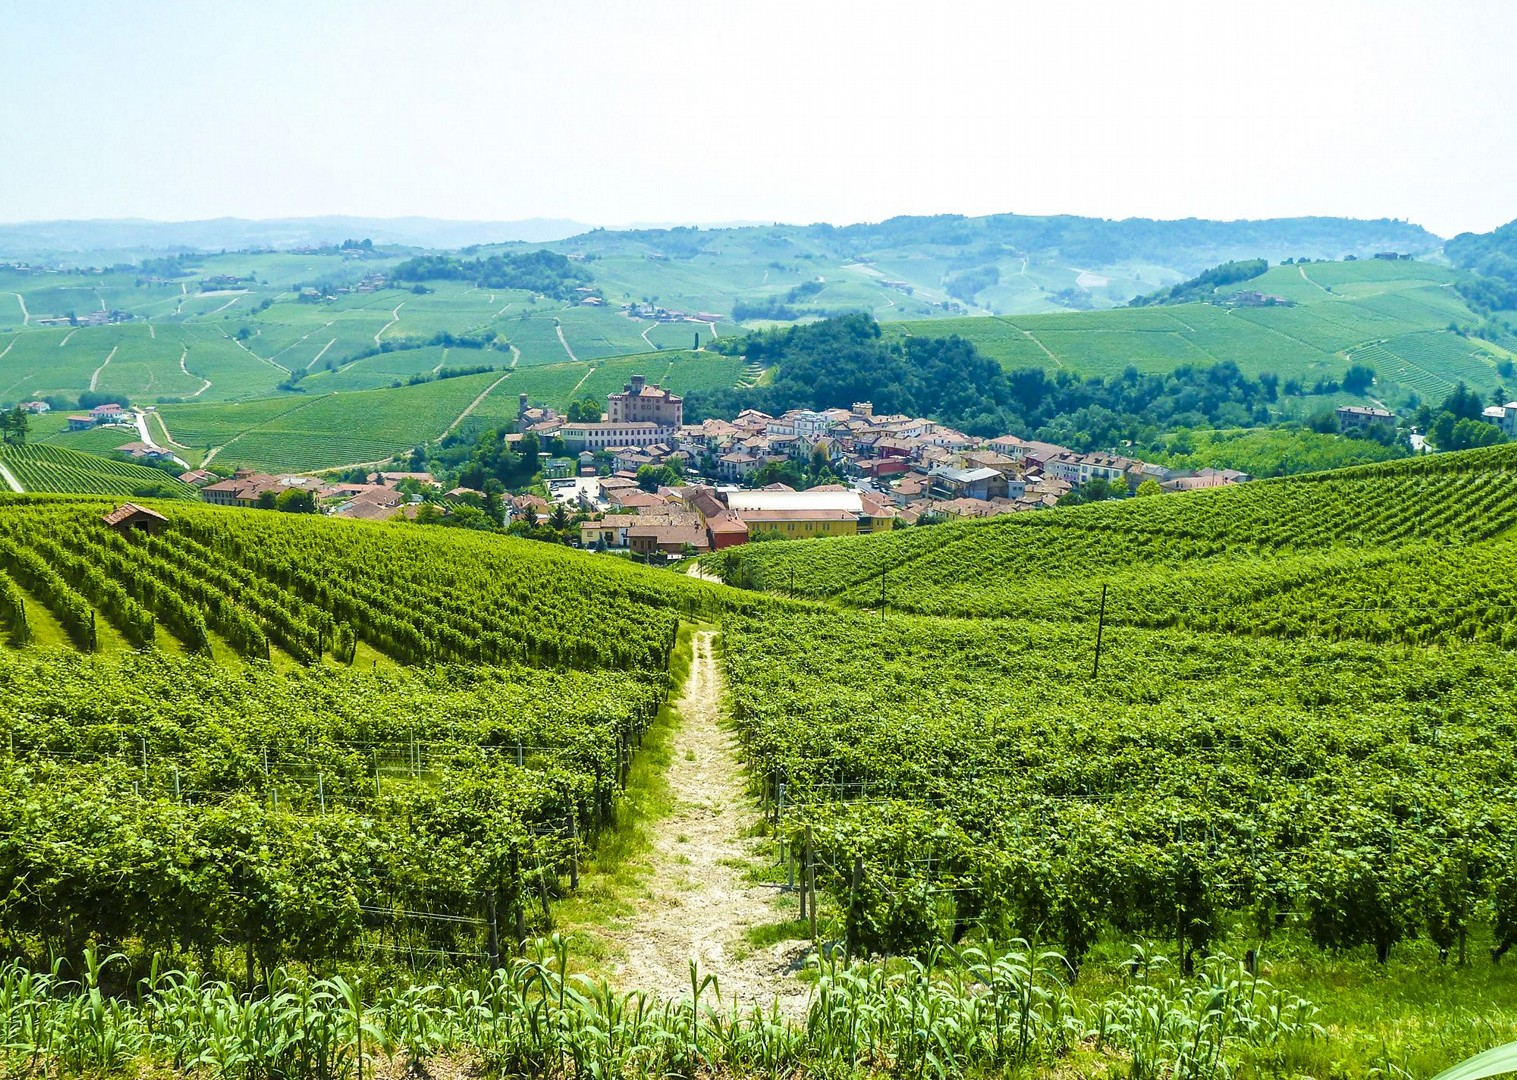 wine-country-easy-cycling-ebike-electric-bike-tour-holiday-italy-piemonte.jpg - Italy - Piemonte - Vineyards and Views - Self-Guided Leisure Cycling Holiday - Leisure Cycling